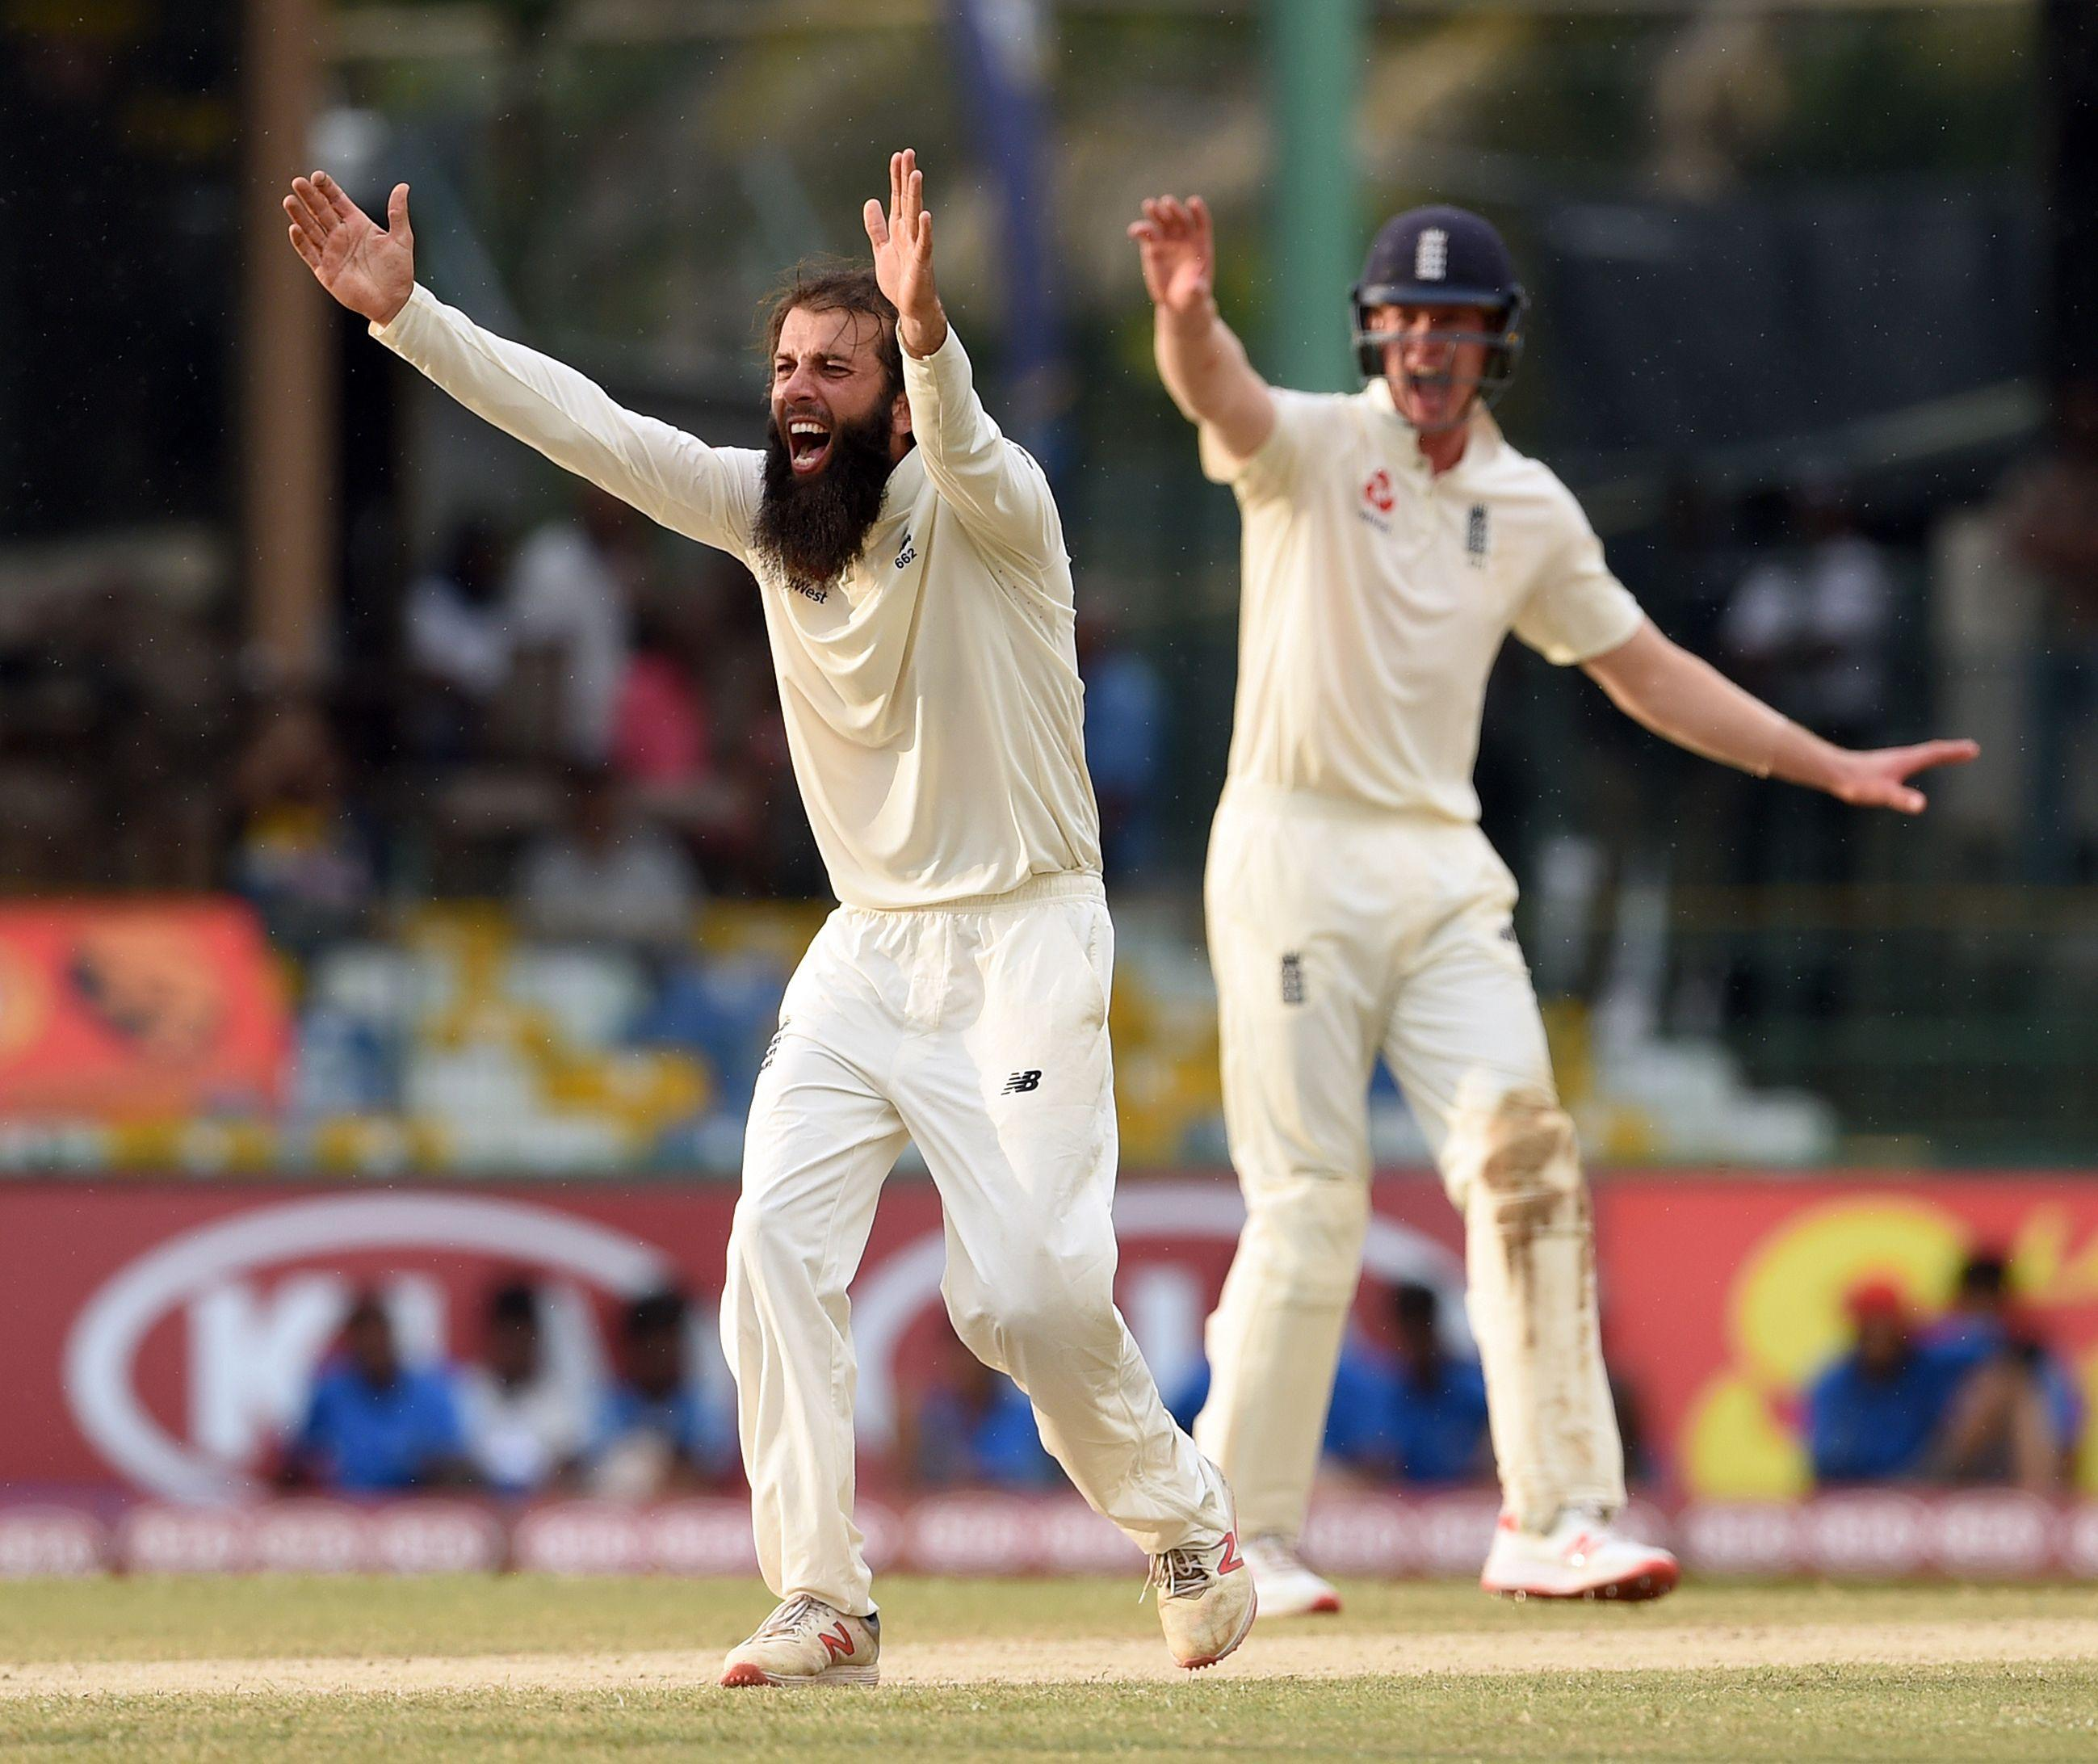 England sit on the brink of a Test series whitewash after another strong day